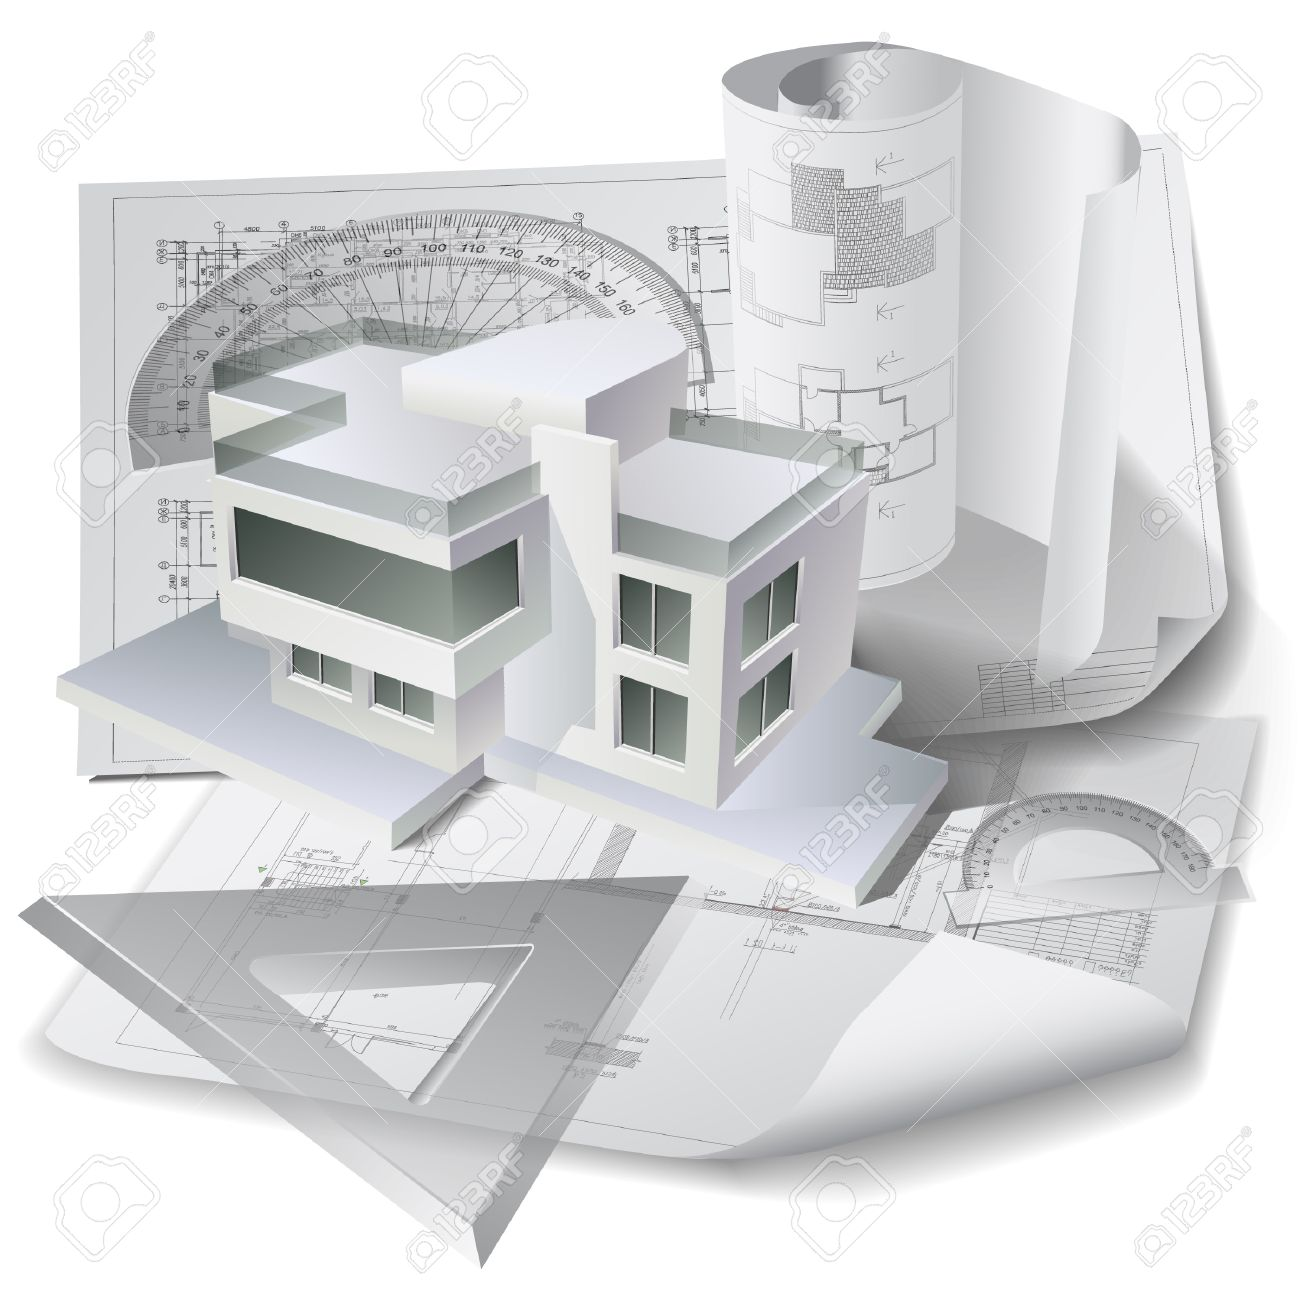 Architectural Background With 3d Building Model Drawing Tools And Rolls Of Drawings Stock Vector